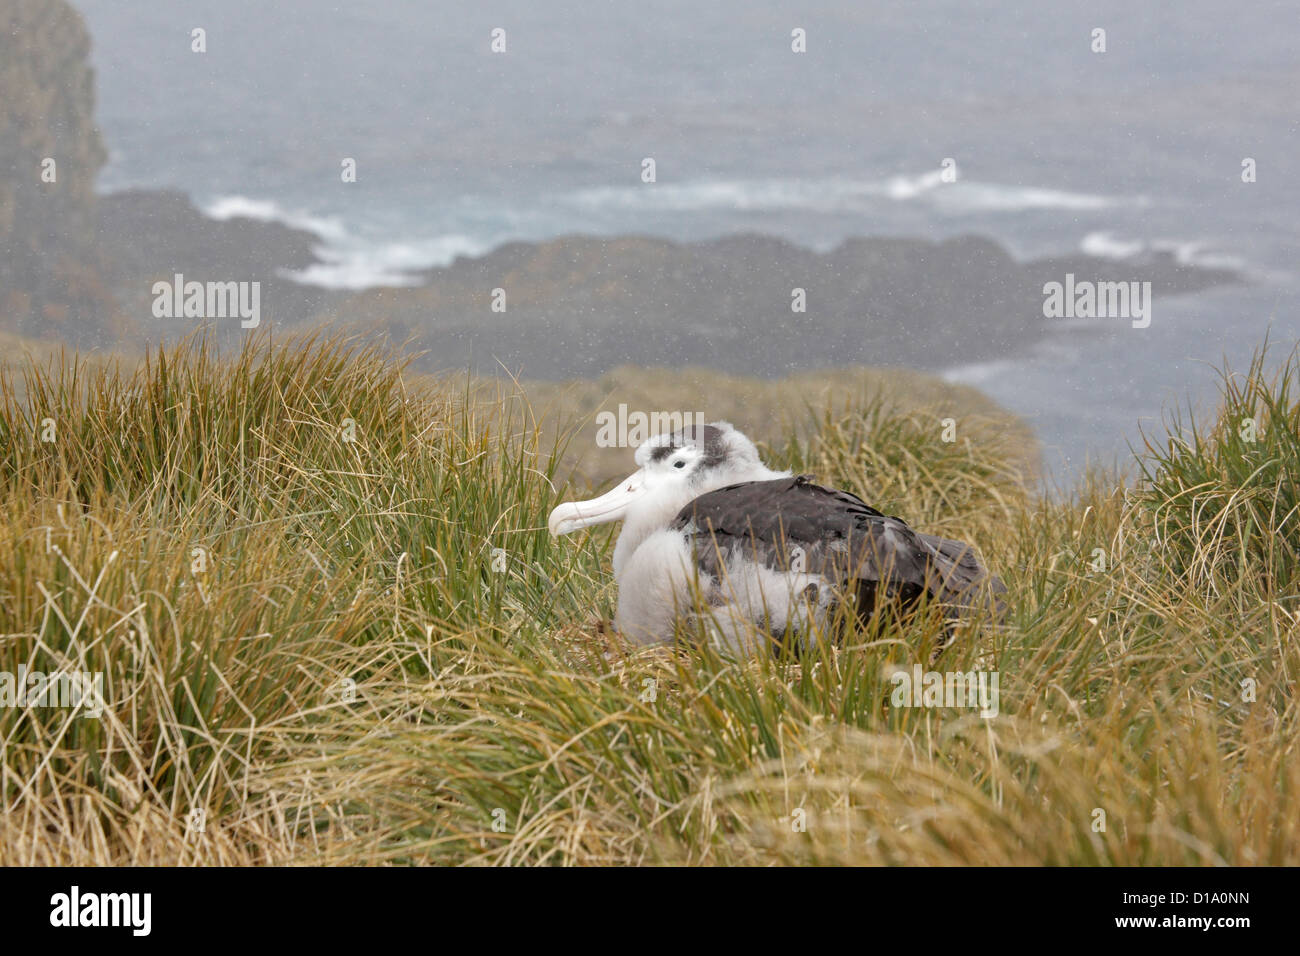 Mature Wandering Albatross chick in snow storm on Prion Island South Georgia - Stock Image